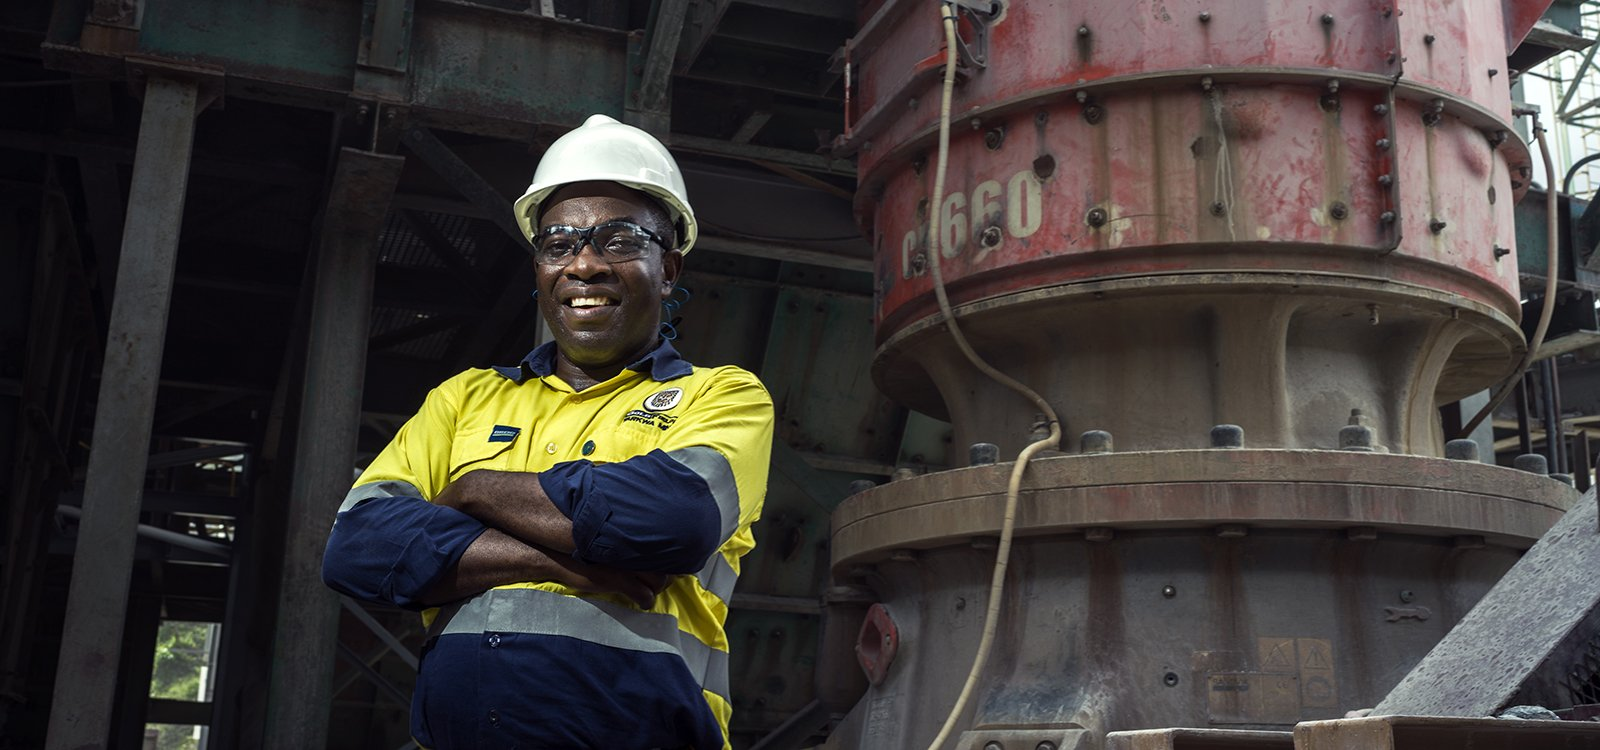 <p>Kofi Arhin, CIL plant engineer, enjoys the challenge of maintaining and improving processing efficiencies to help keep the mill fed.</p>